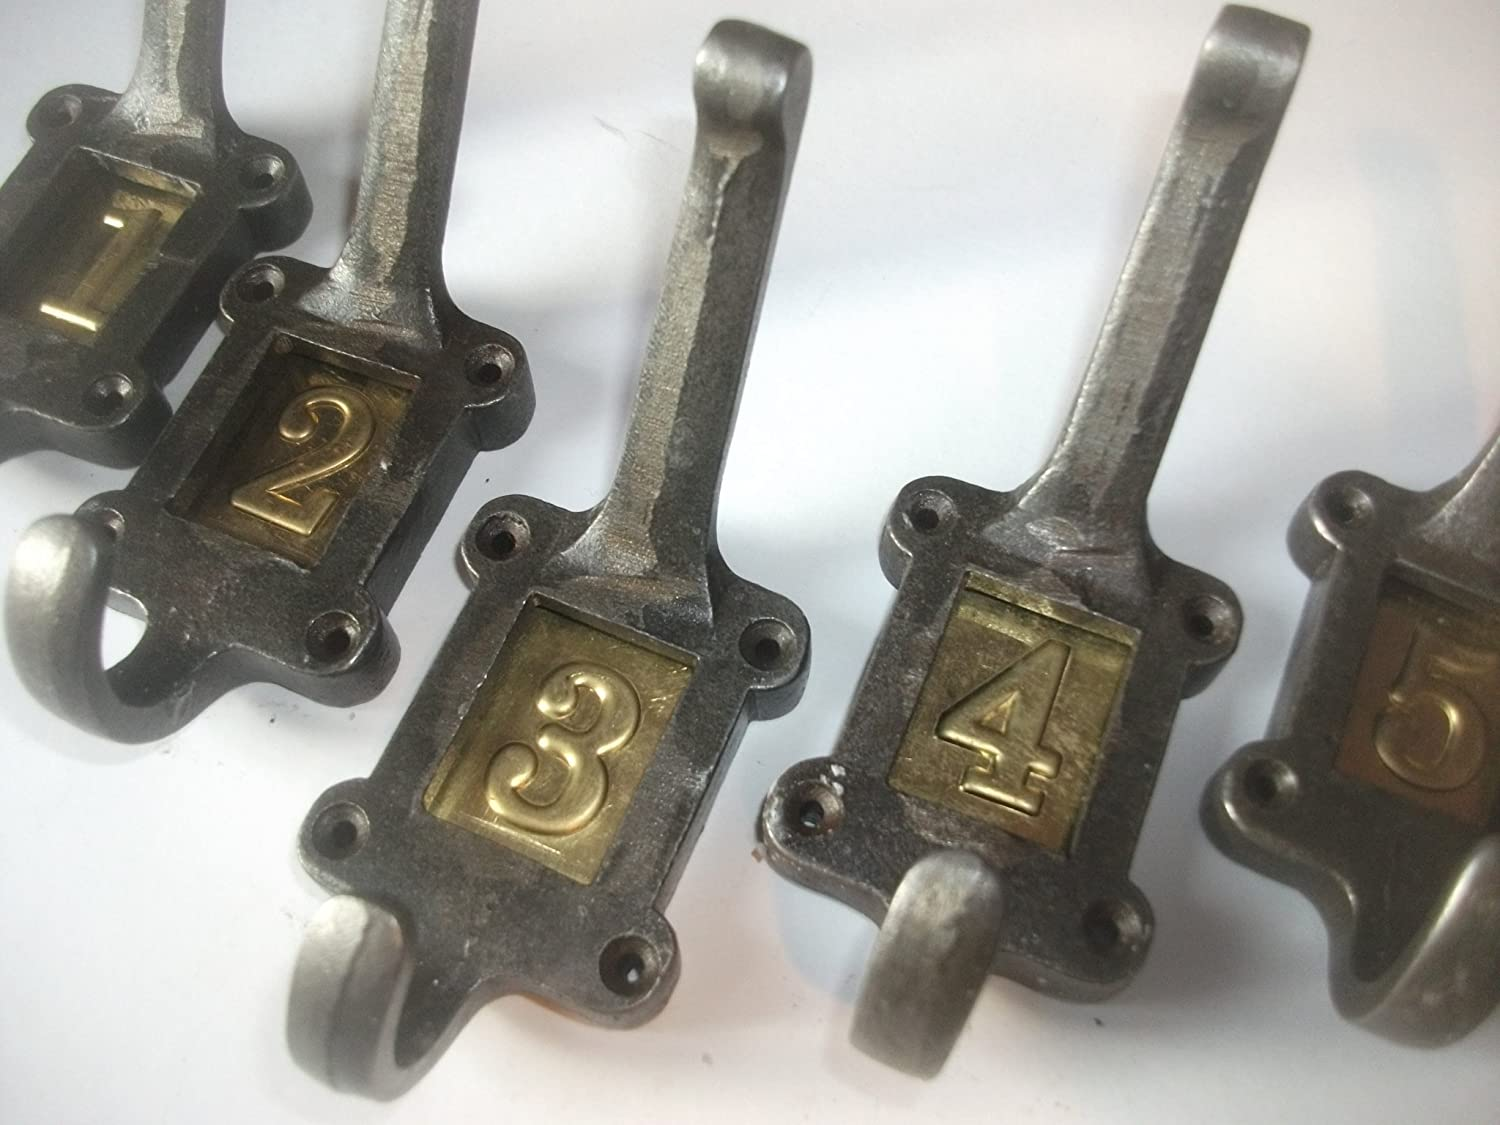 5 X CAST IRON SCHOOL COAT HOOKS BRASS No's Vintage ANTIQUE shabby chic look -Alsop's Allsorts